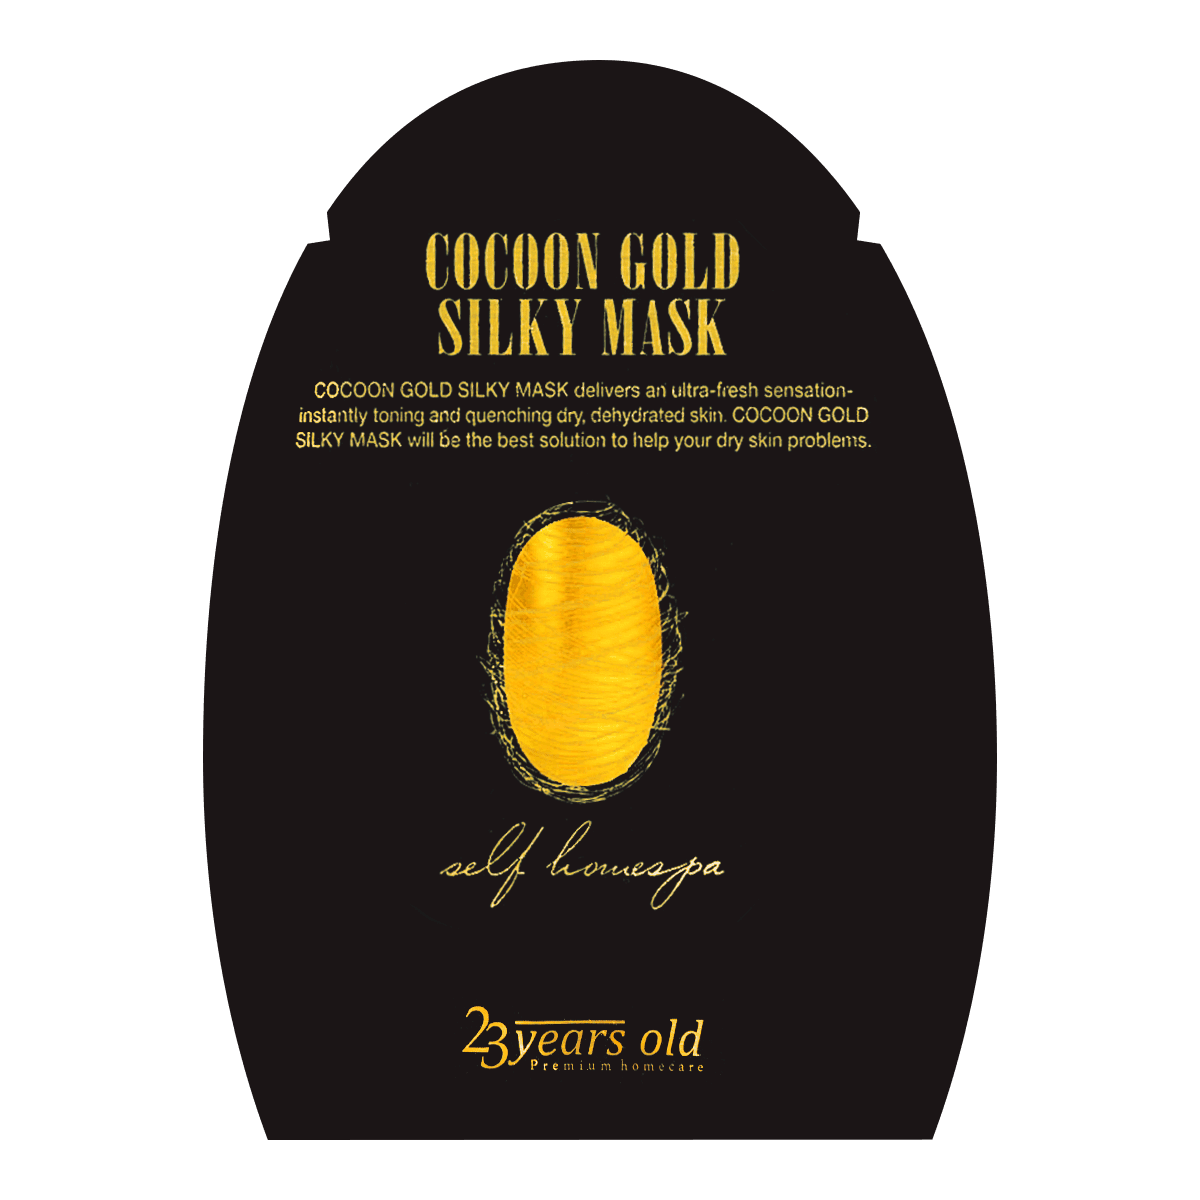 23 YEARS OLD Cocoon Gold Silky Mask 1sheet